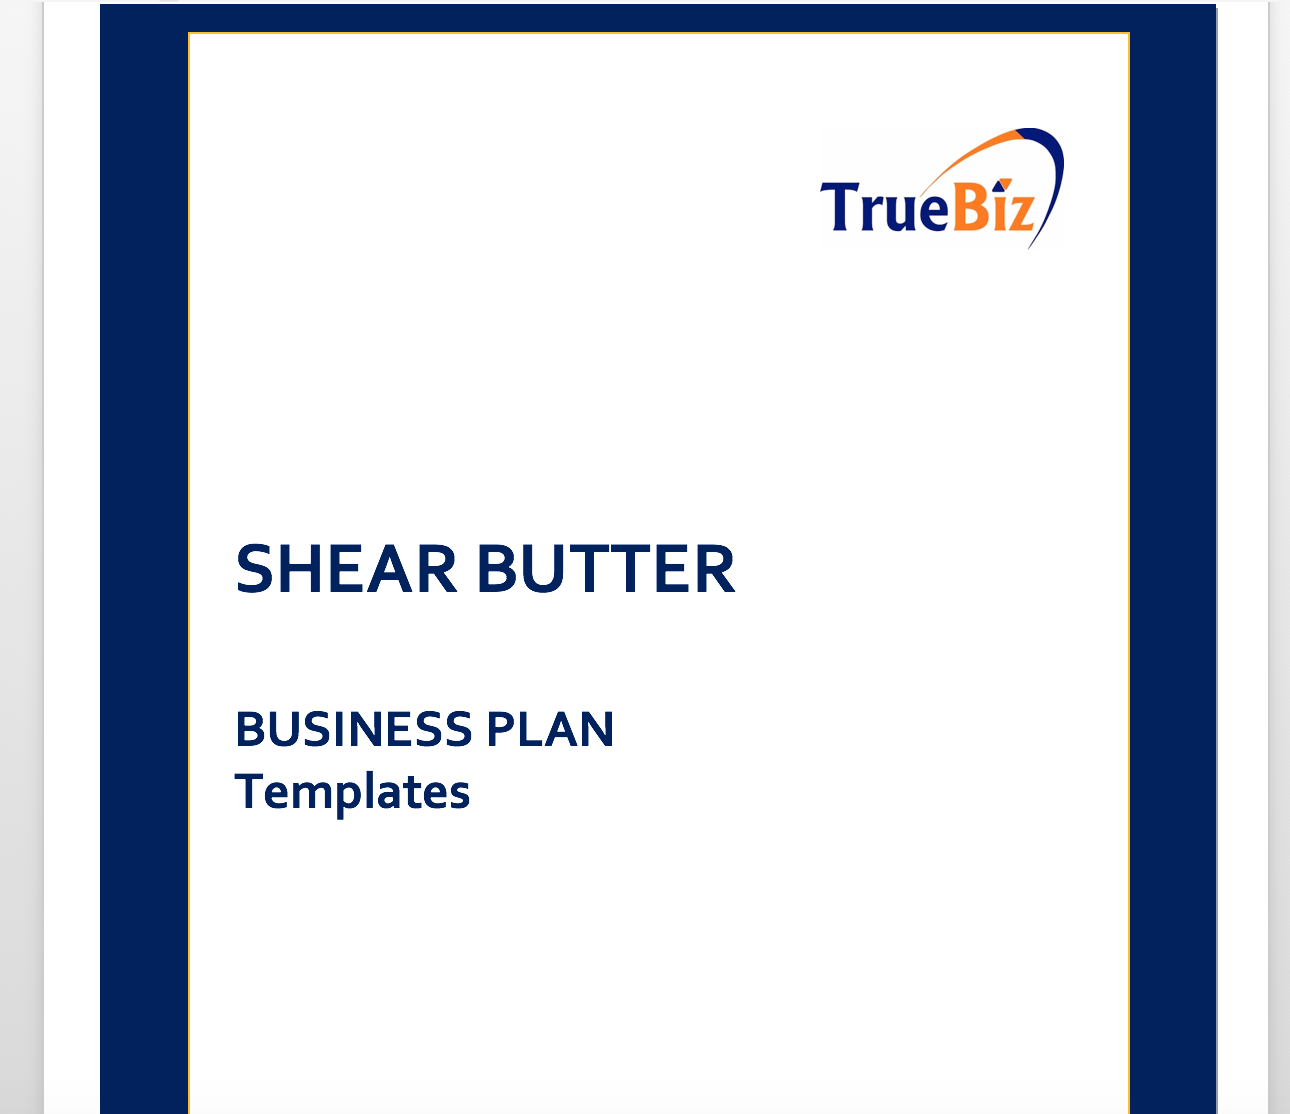 shear butter business plan templates truebiz